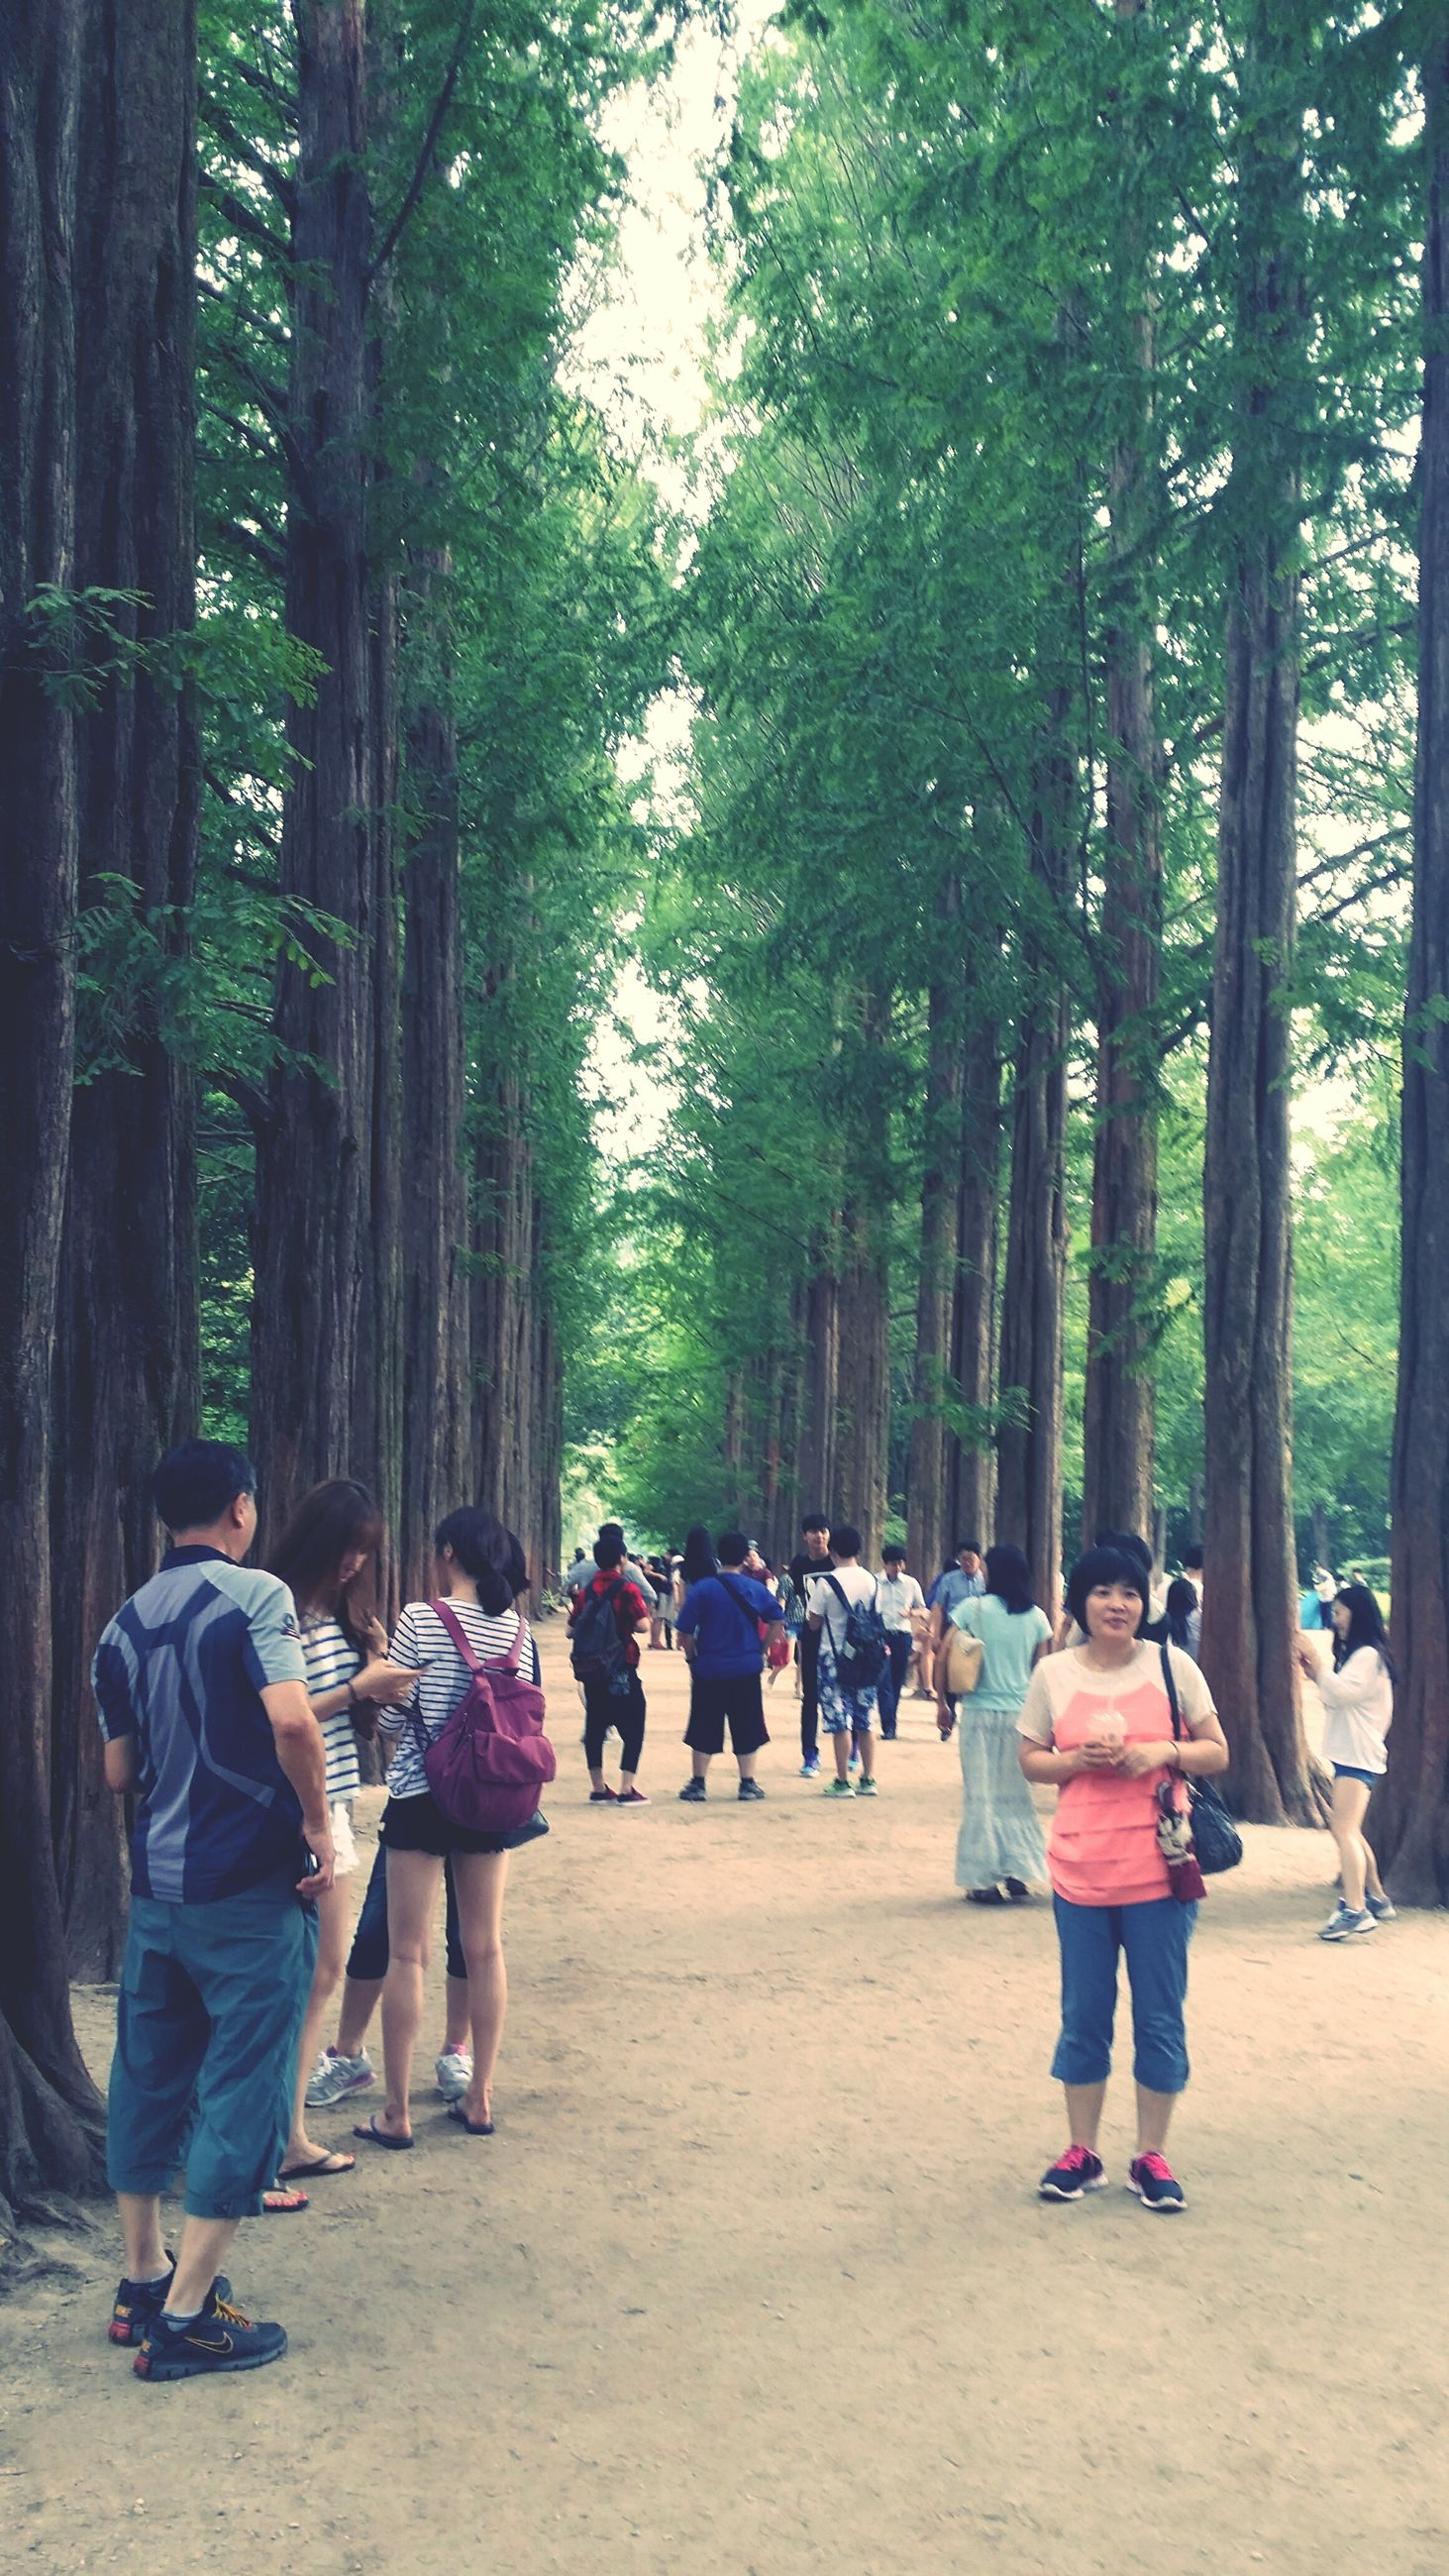 tree, lifestyles, leisure activity, person, men, rear view, togetherness, full length, casual clothing, walking, girls, childhood, boys, large group of people, park - man made space, bonding, tree trunk, love